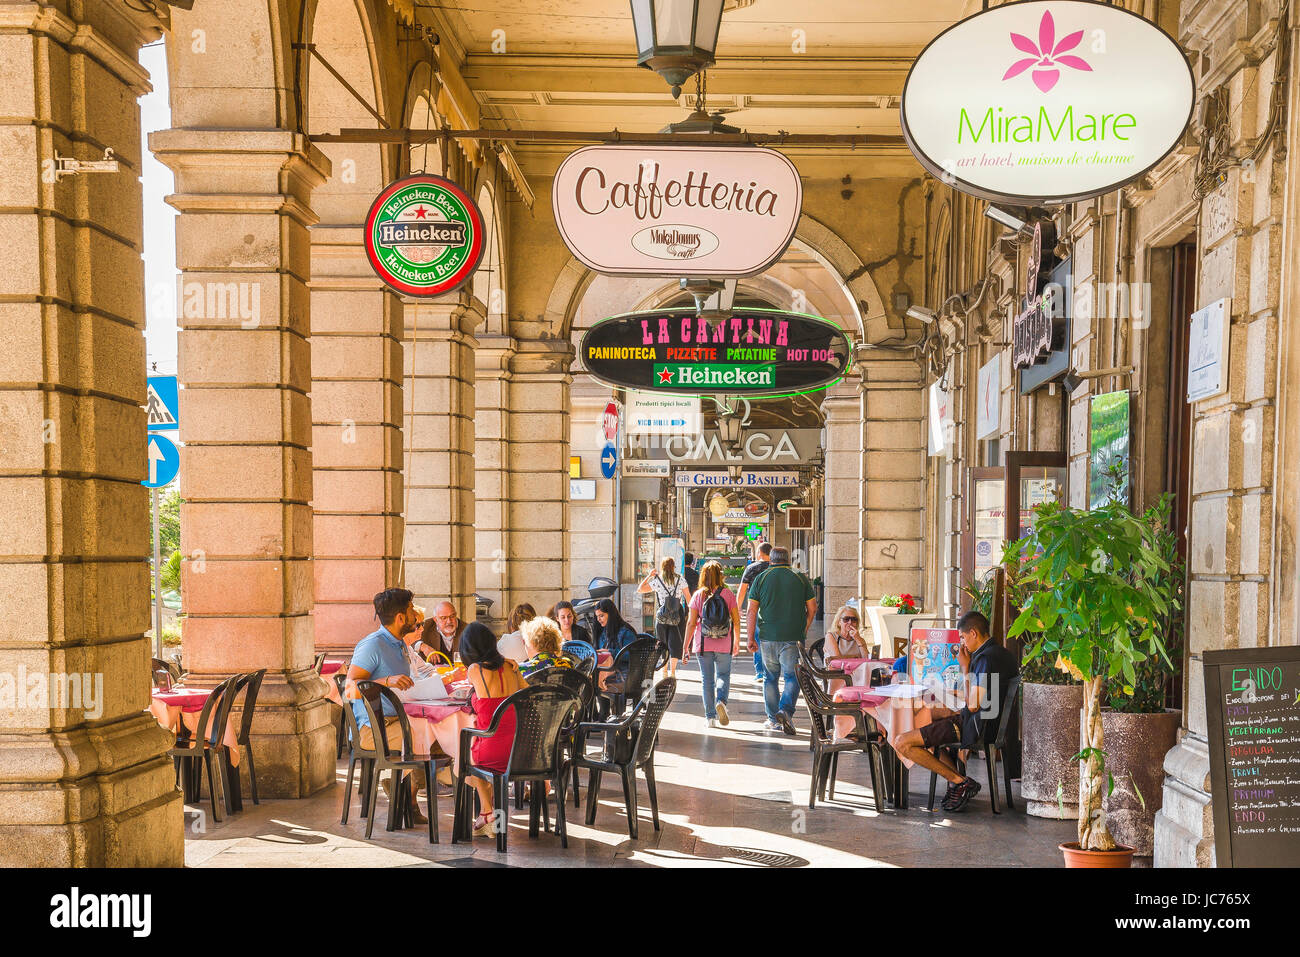 Cagliari arcade, people relax at a cafe terrace inside an arcaded street in the Via Roma in the Marina quarter of - Stock Image